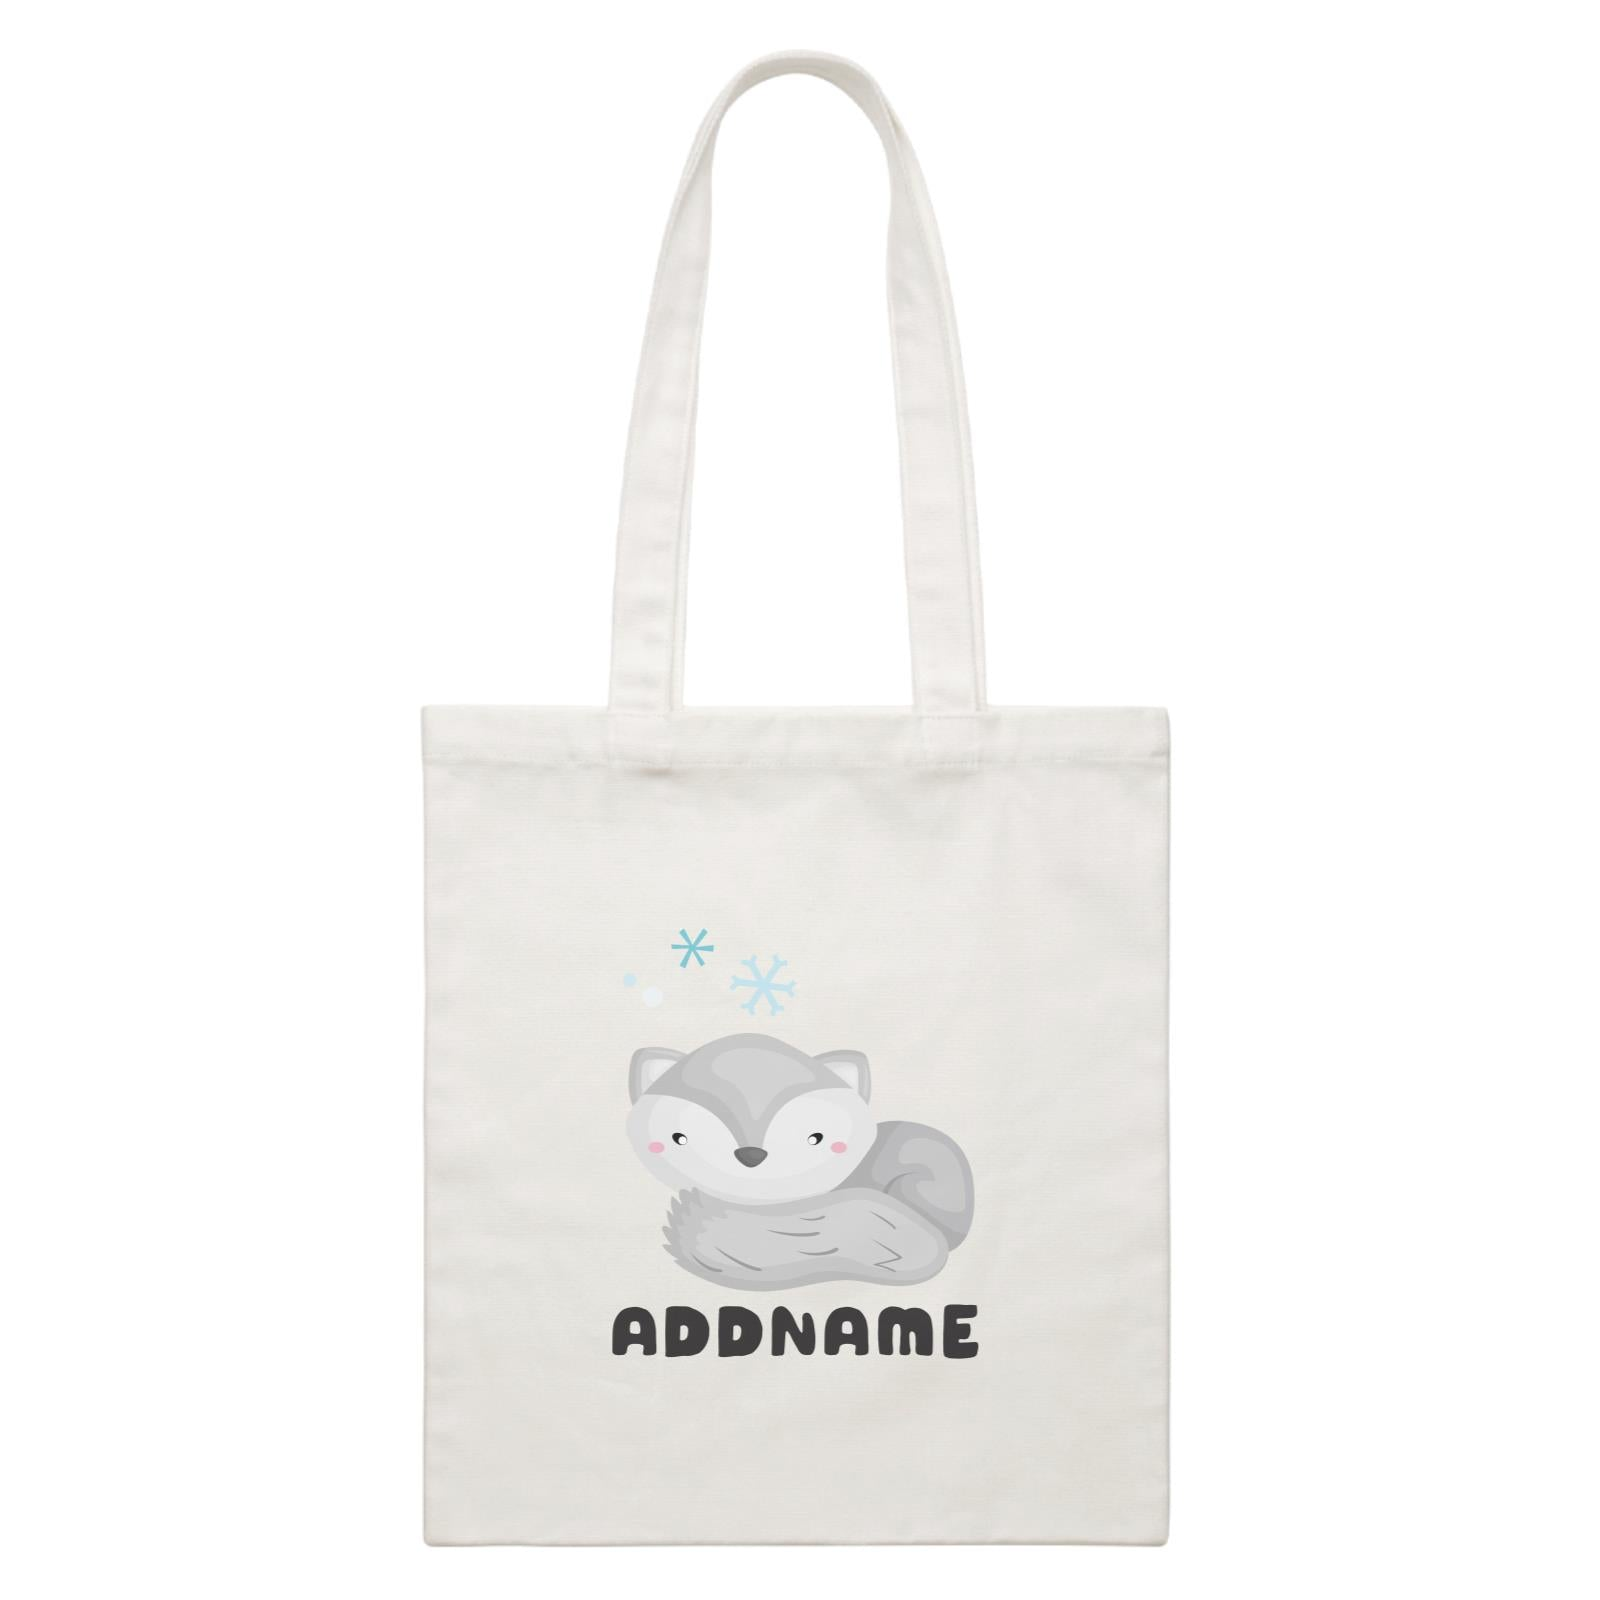 Birthday Winter Animals Lazy Snow Fox Addname White Canvas Bag